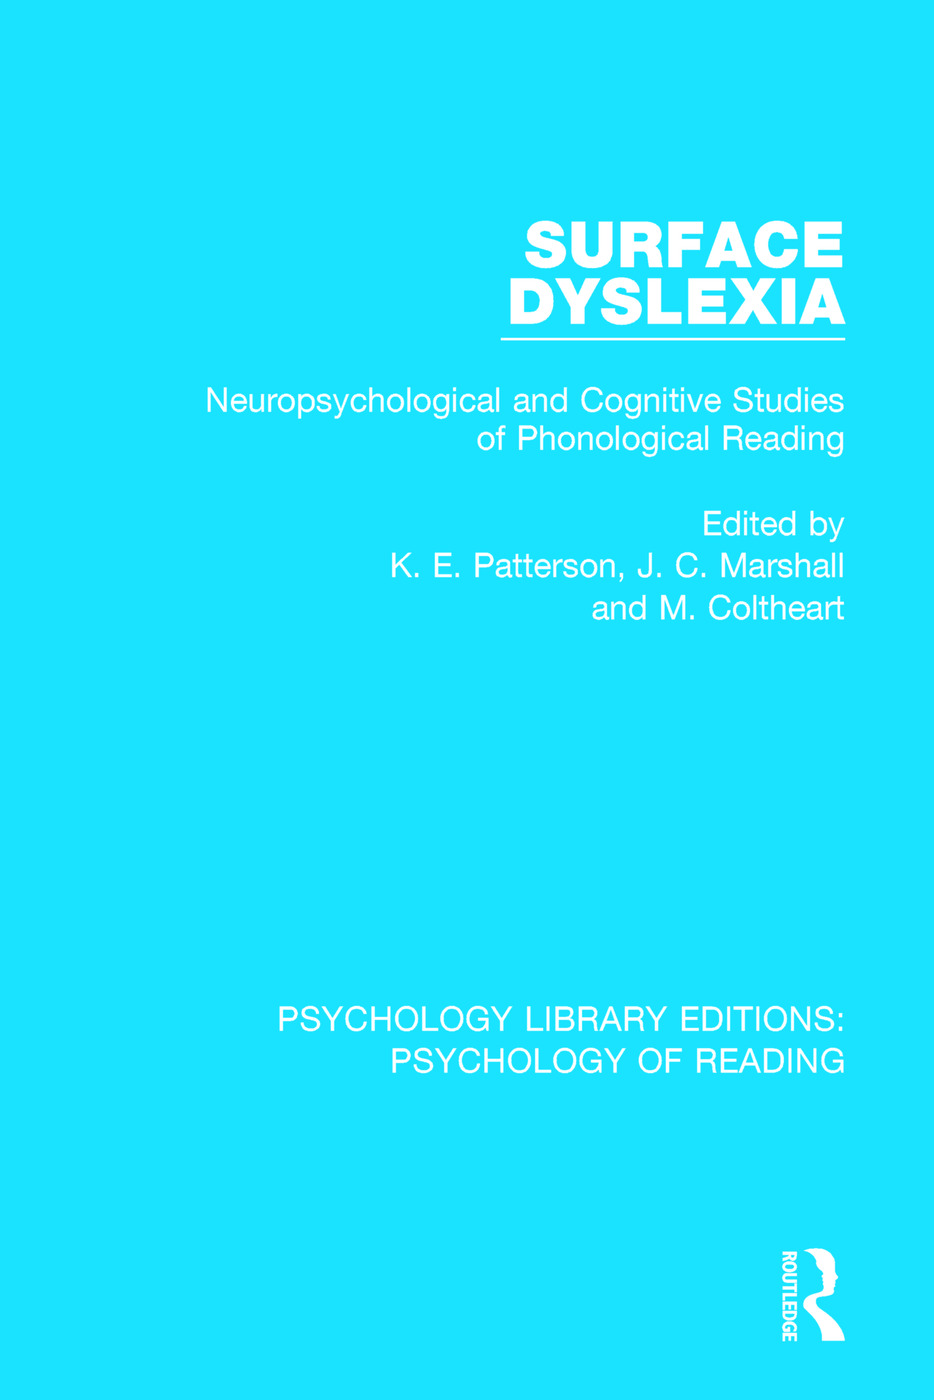 Surface Dyslexia: Neuropsychological and Cognitive Studies of Phonological Reading book cover